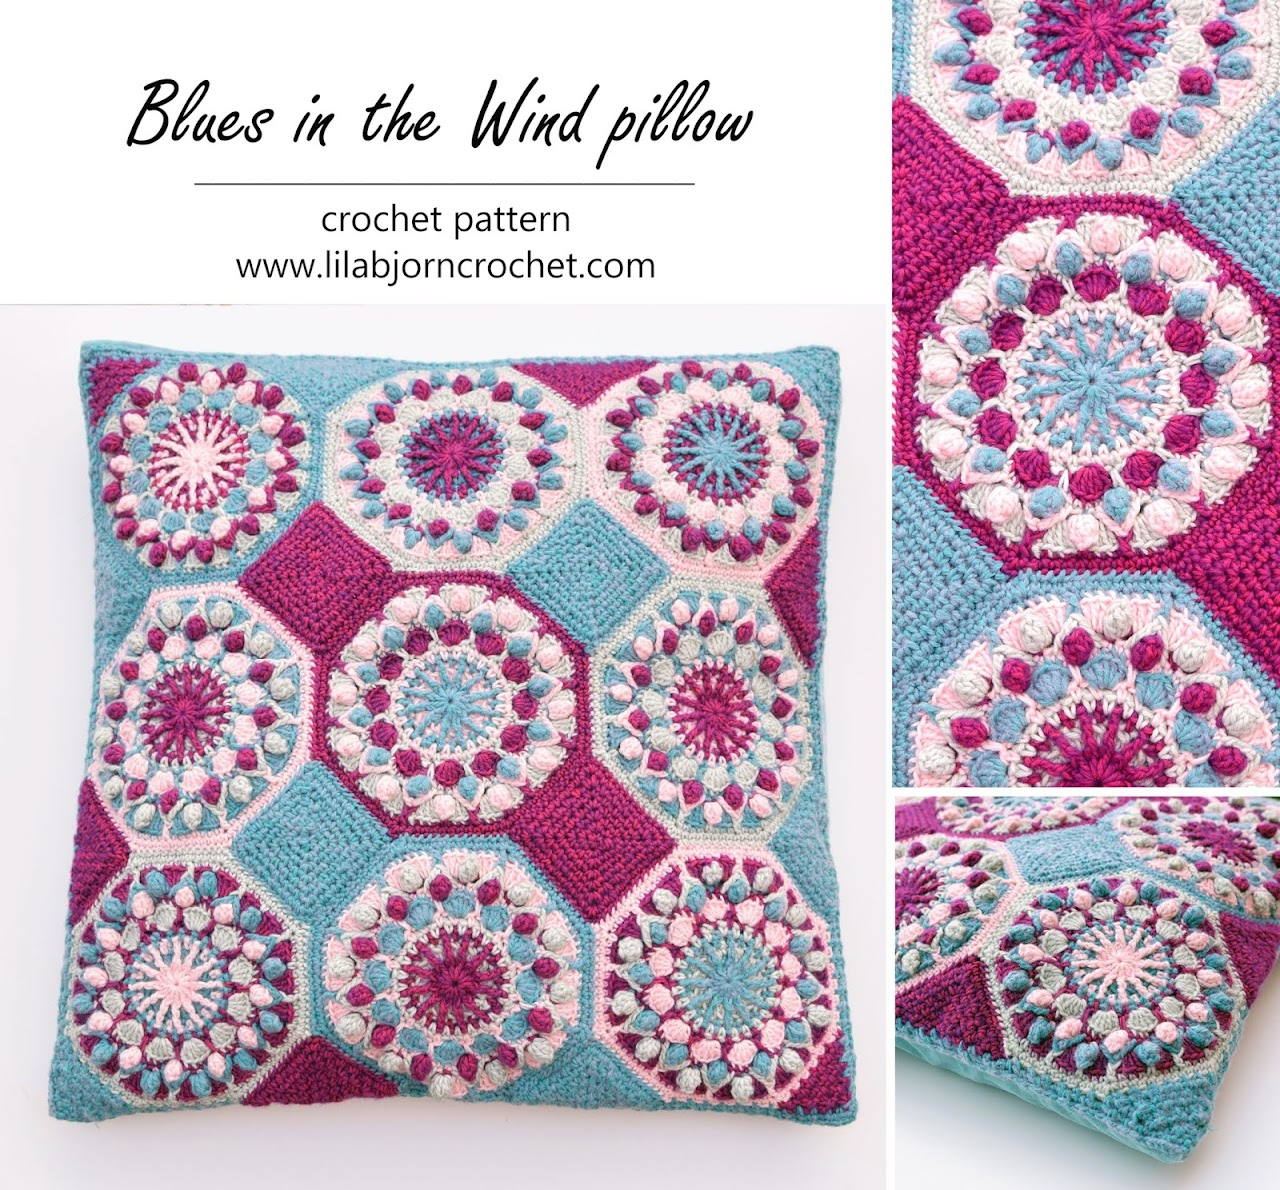 Blues in the Wind - crochet pattern for a pillow, blanket, coasters and baubles. All in one! by www.lillabjorncrochet.com